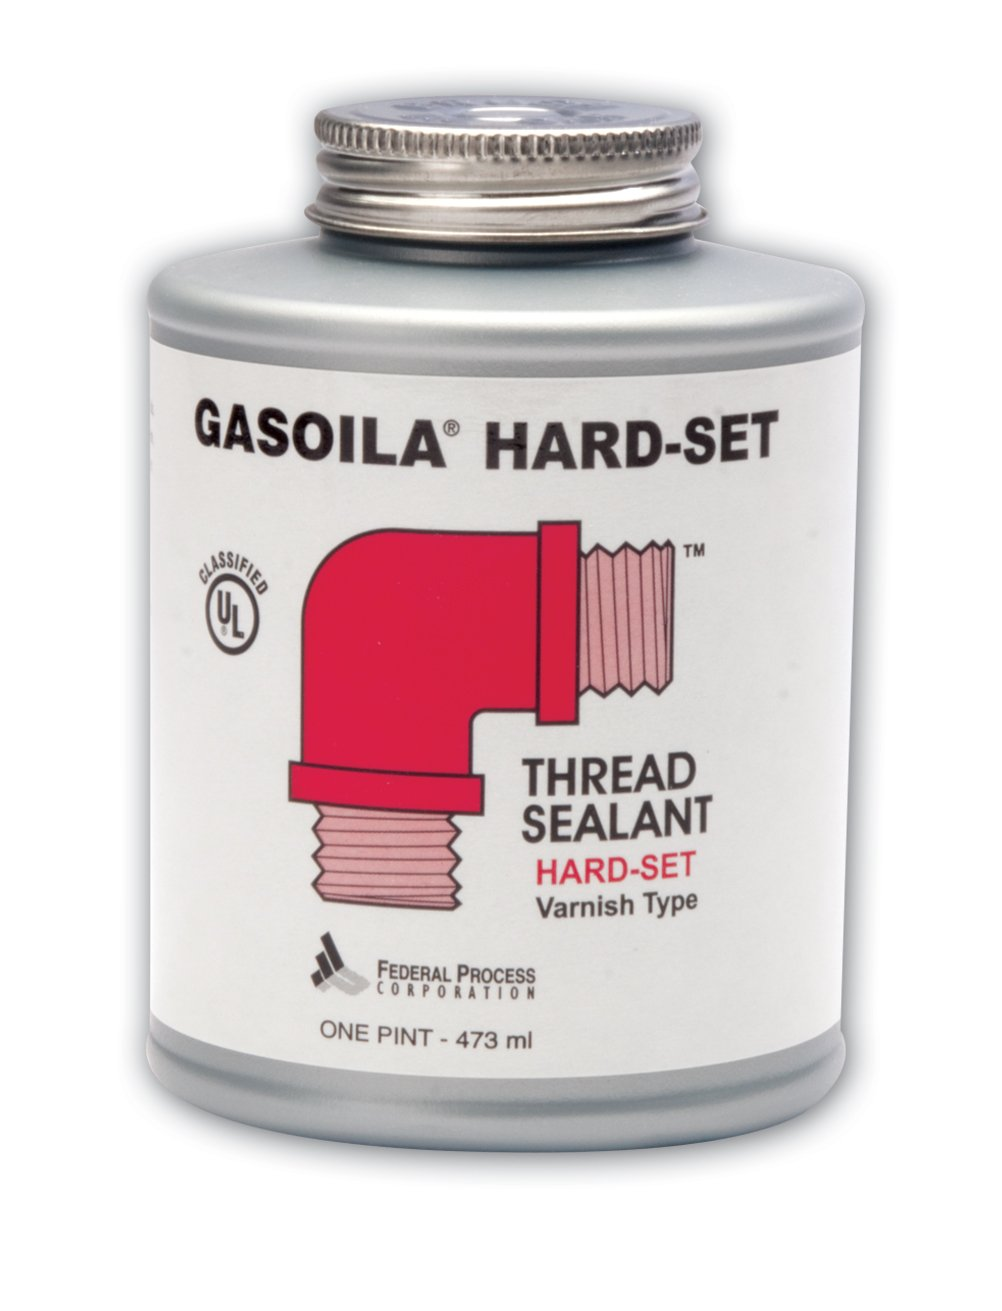 Gasoila Hard-Set Red Varnish Thread Sealant, -60 to 350 Degree F, 1/2 pint Can by Gasoila